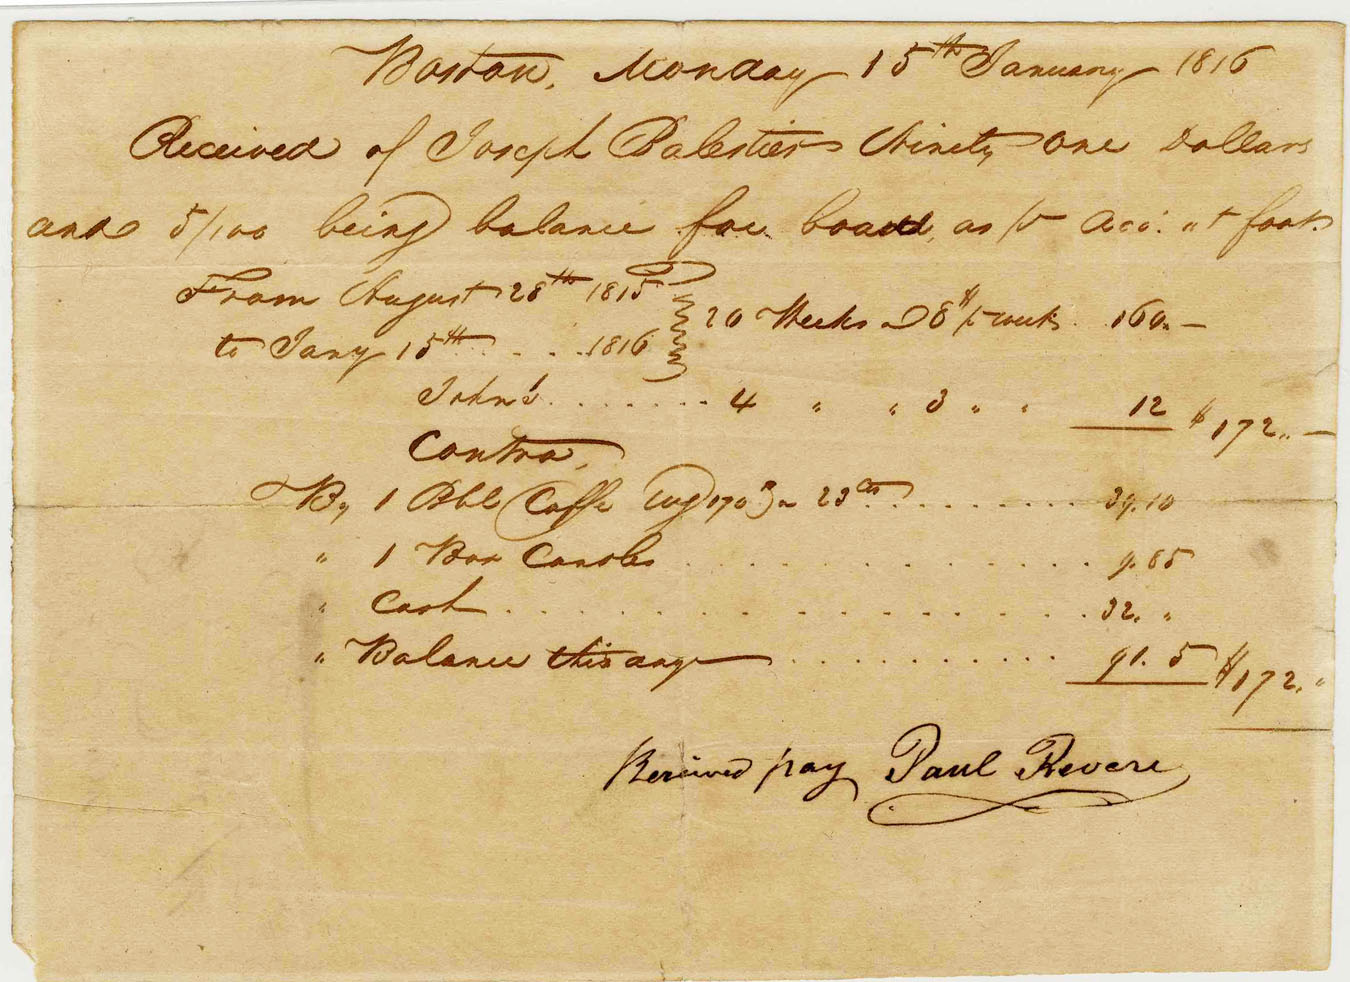 Paul Revere Autograph Incredibly Scarce Paul Revere Autographed Receipt -- From the Patriot Who Called His Countrymen to Arms -- 1816